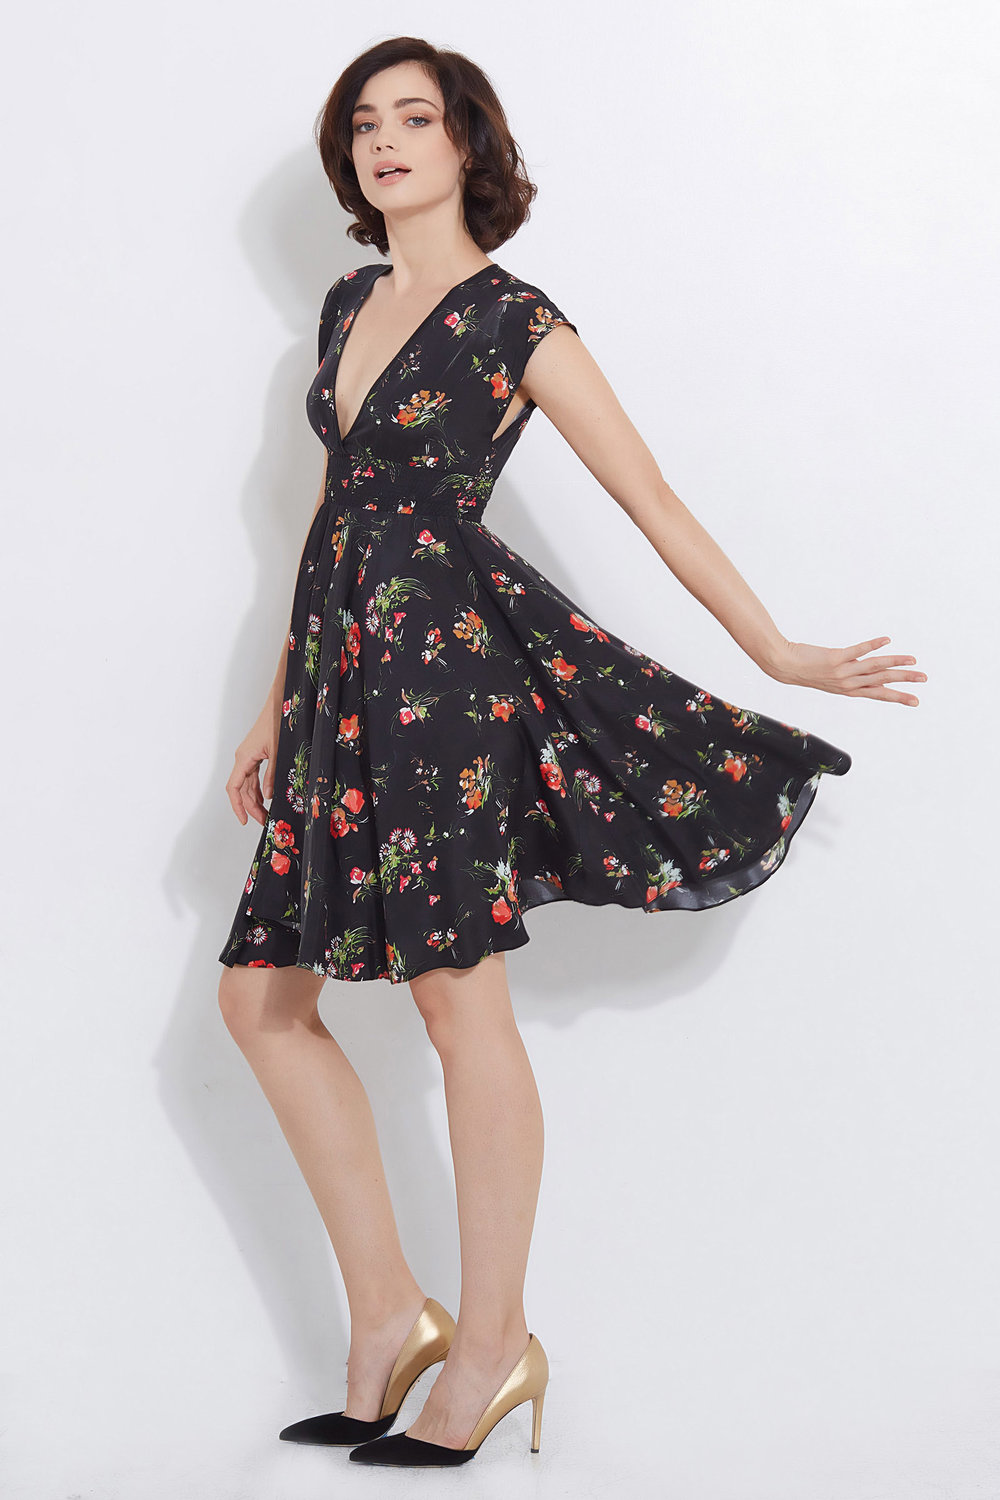 Raquelle Party Dress Midnight Floral Darling 9.jpg